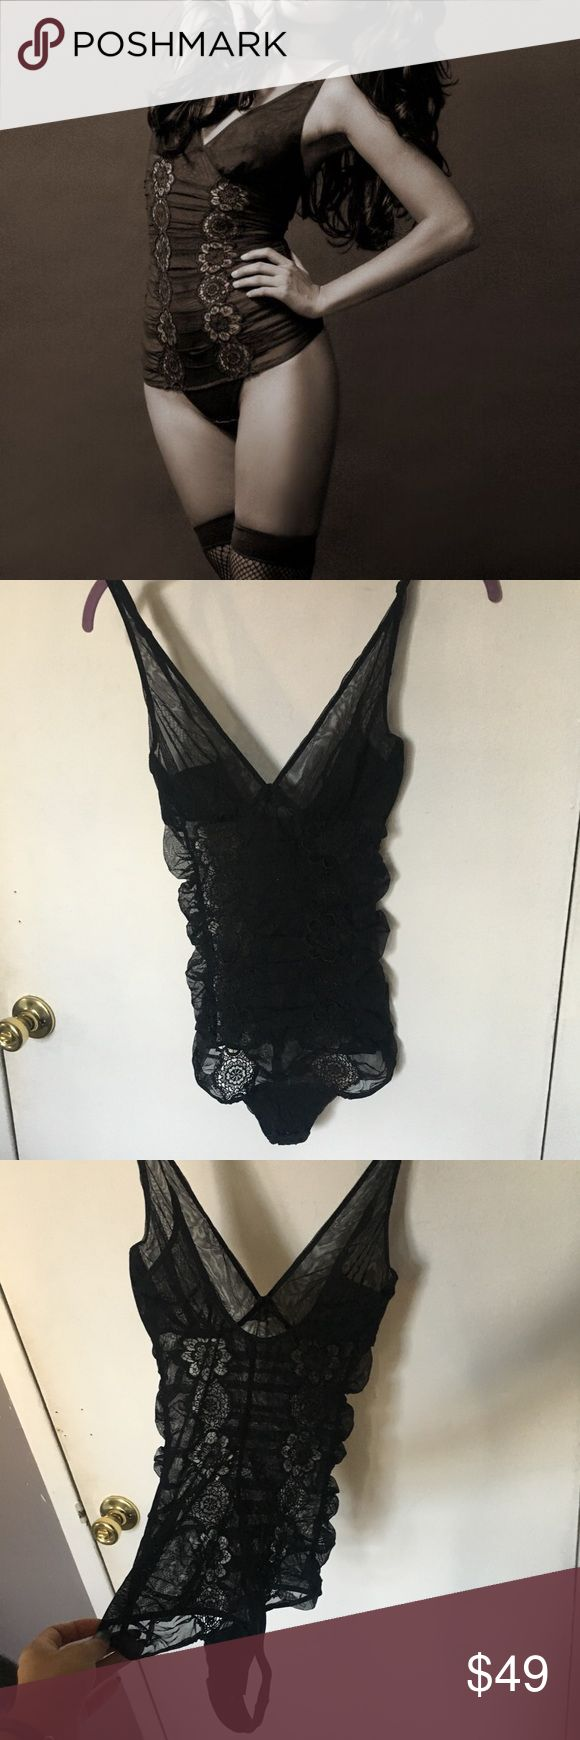 La Perla black mesh bodysuit 36A/B Sexy mesh black bodysuit.  Fits 34/36 - A/B Thong style.  Great condition.   Worn only couple times.  Size Small or Medium. La Perla Intimates & Sleepwear Shapewear